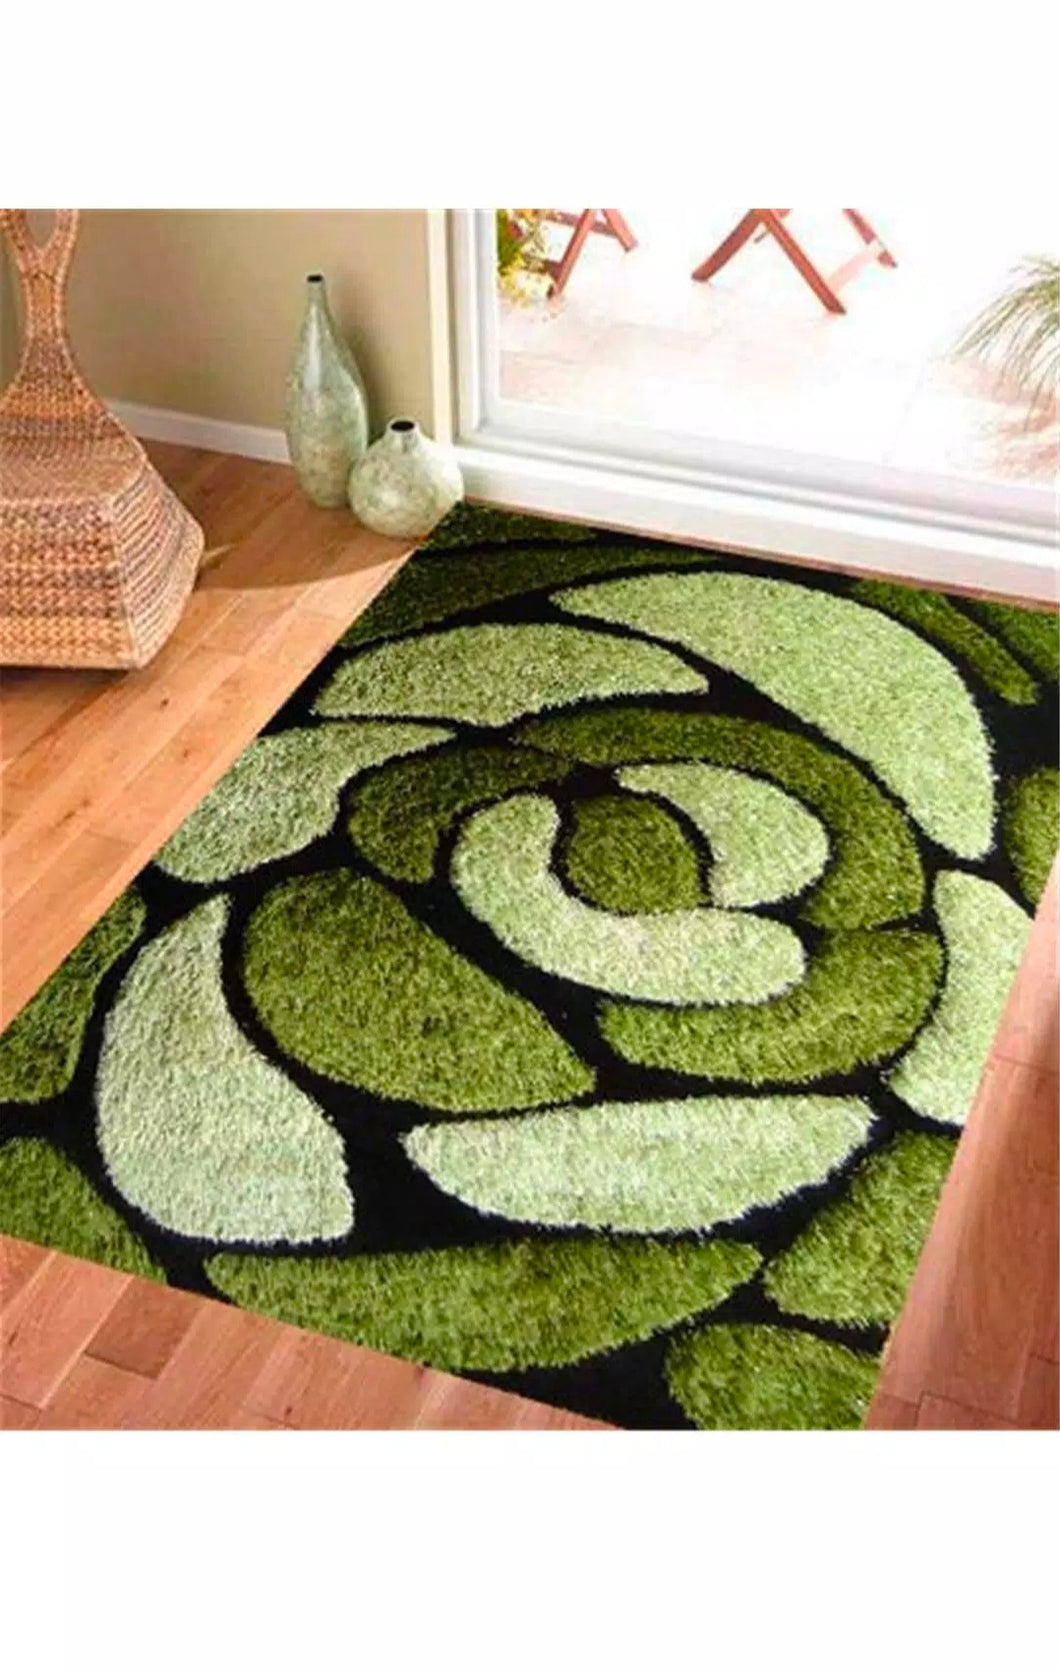 Panipat Direct Shaggy Carpet Multi (3Ft*5Ft)-Home Soft Fabric Product.-thegsnd